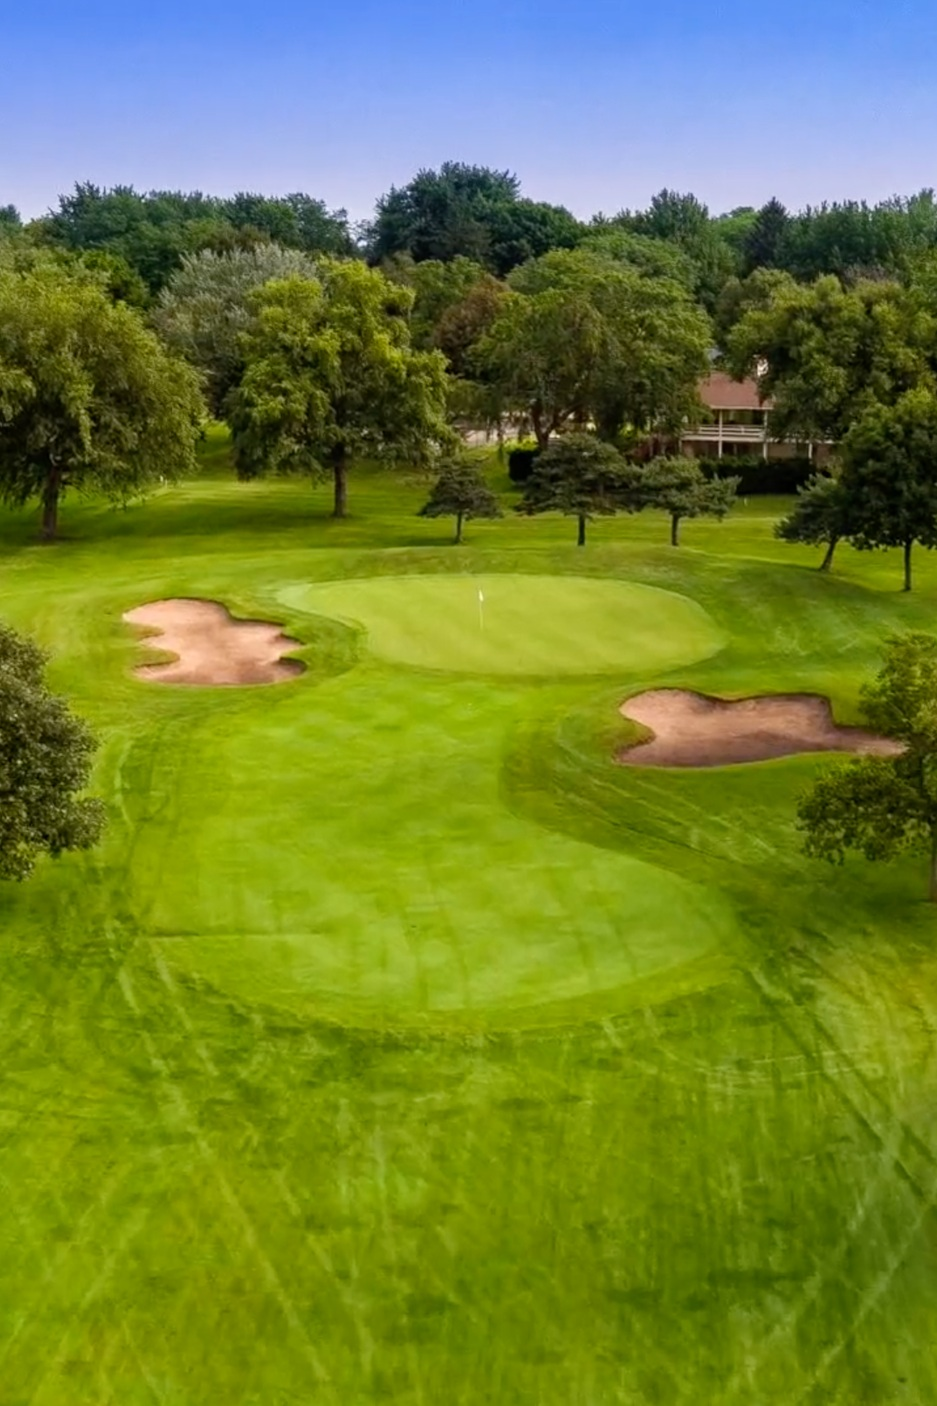 golf-greens-at-sunnyside-golf-and-country-club